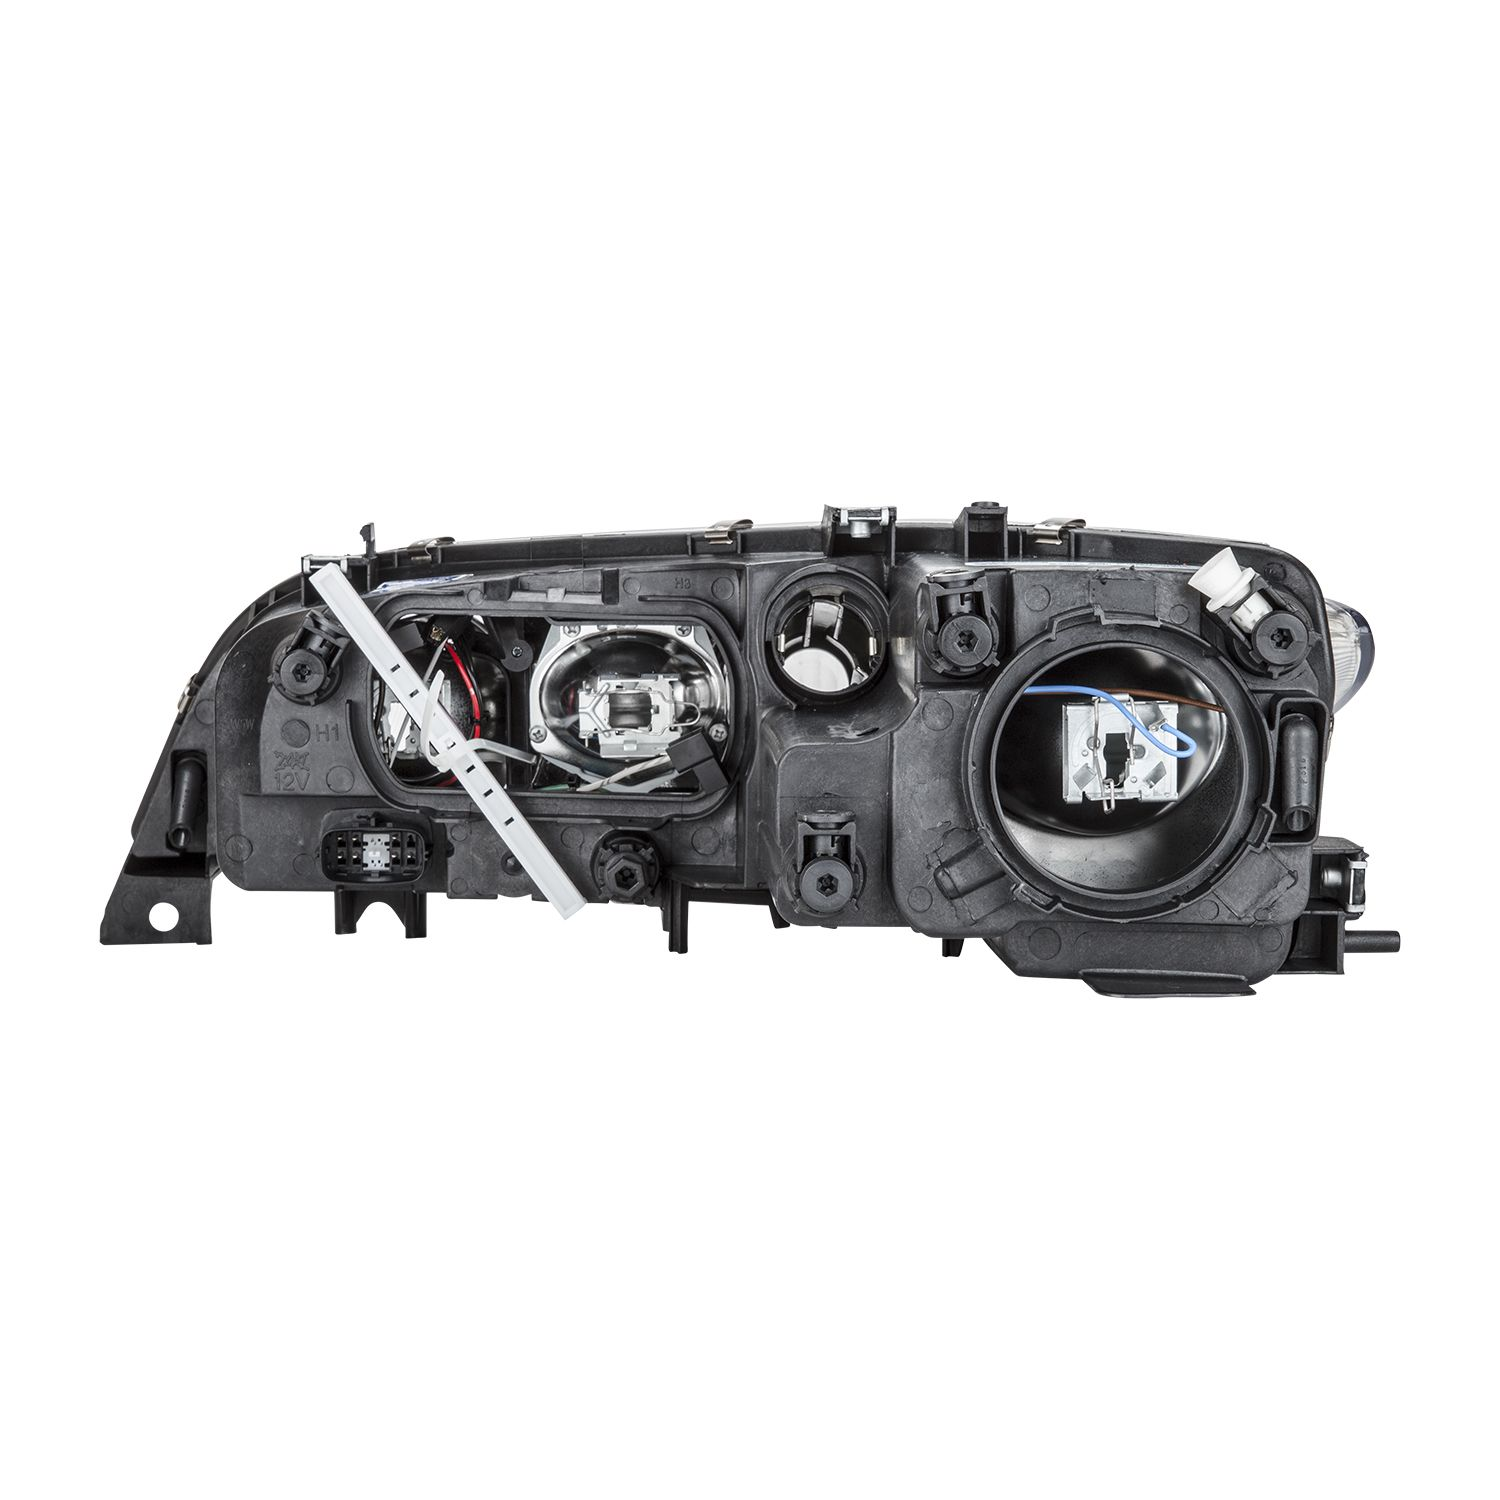 TYC 20-6455-91-1 For MAZDA6 Right Replacement Head Lamp